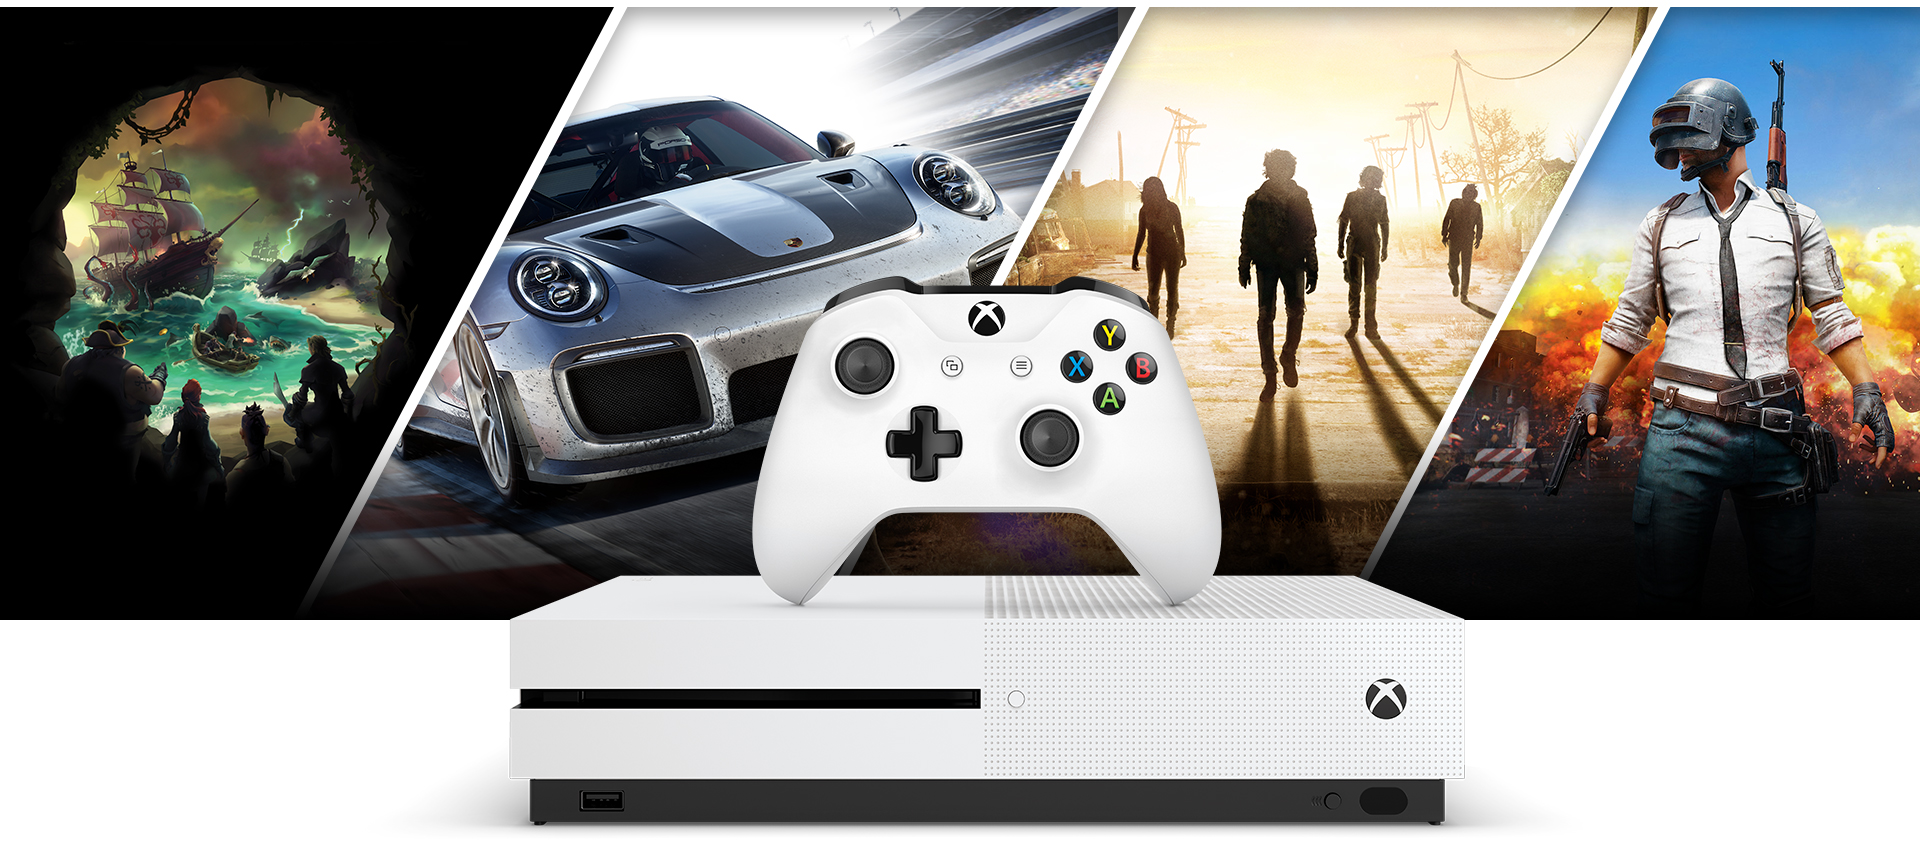 Sea of Thieves Forza 7 State of Decay 3 and Player Unknown's Battlegrounds graphics behind an Xbox One S and White Xbox Controller